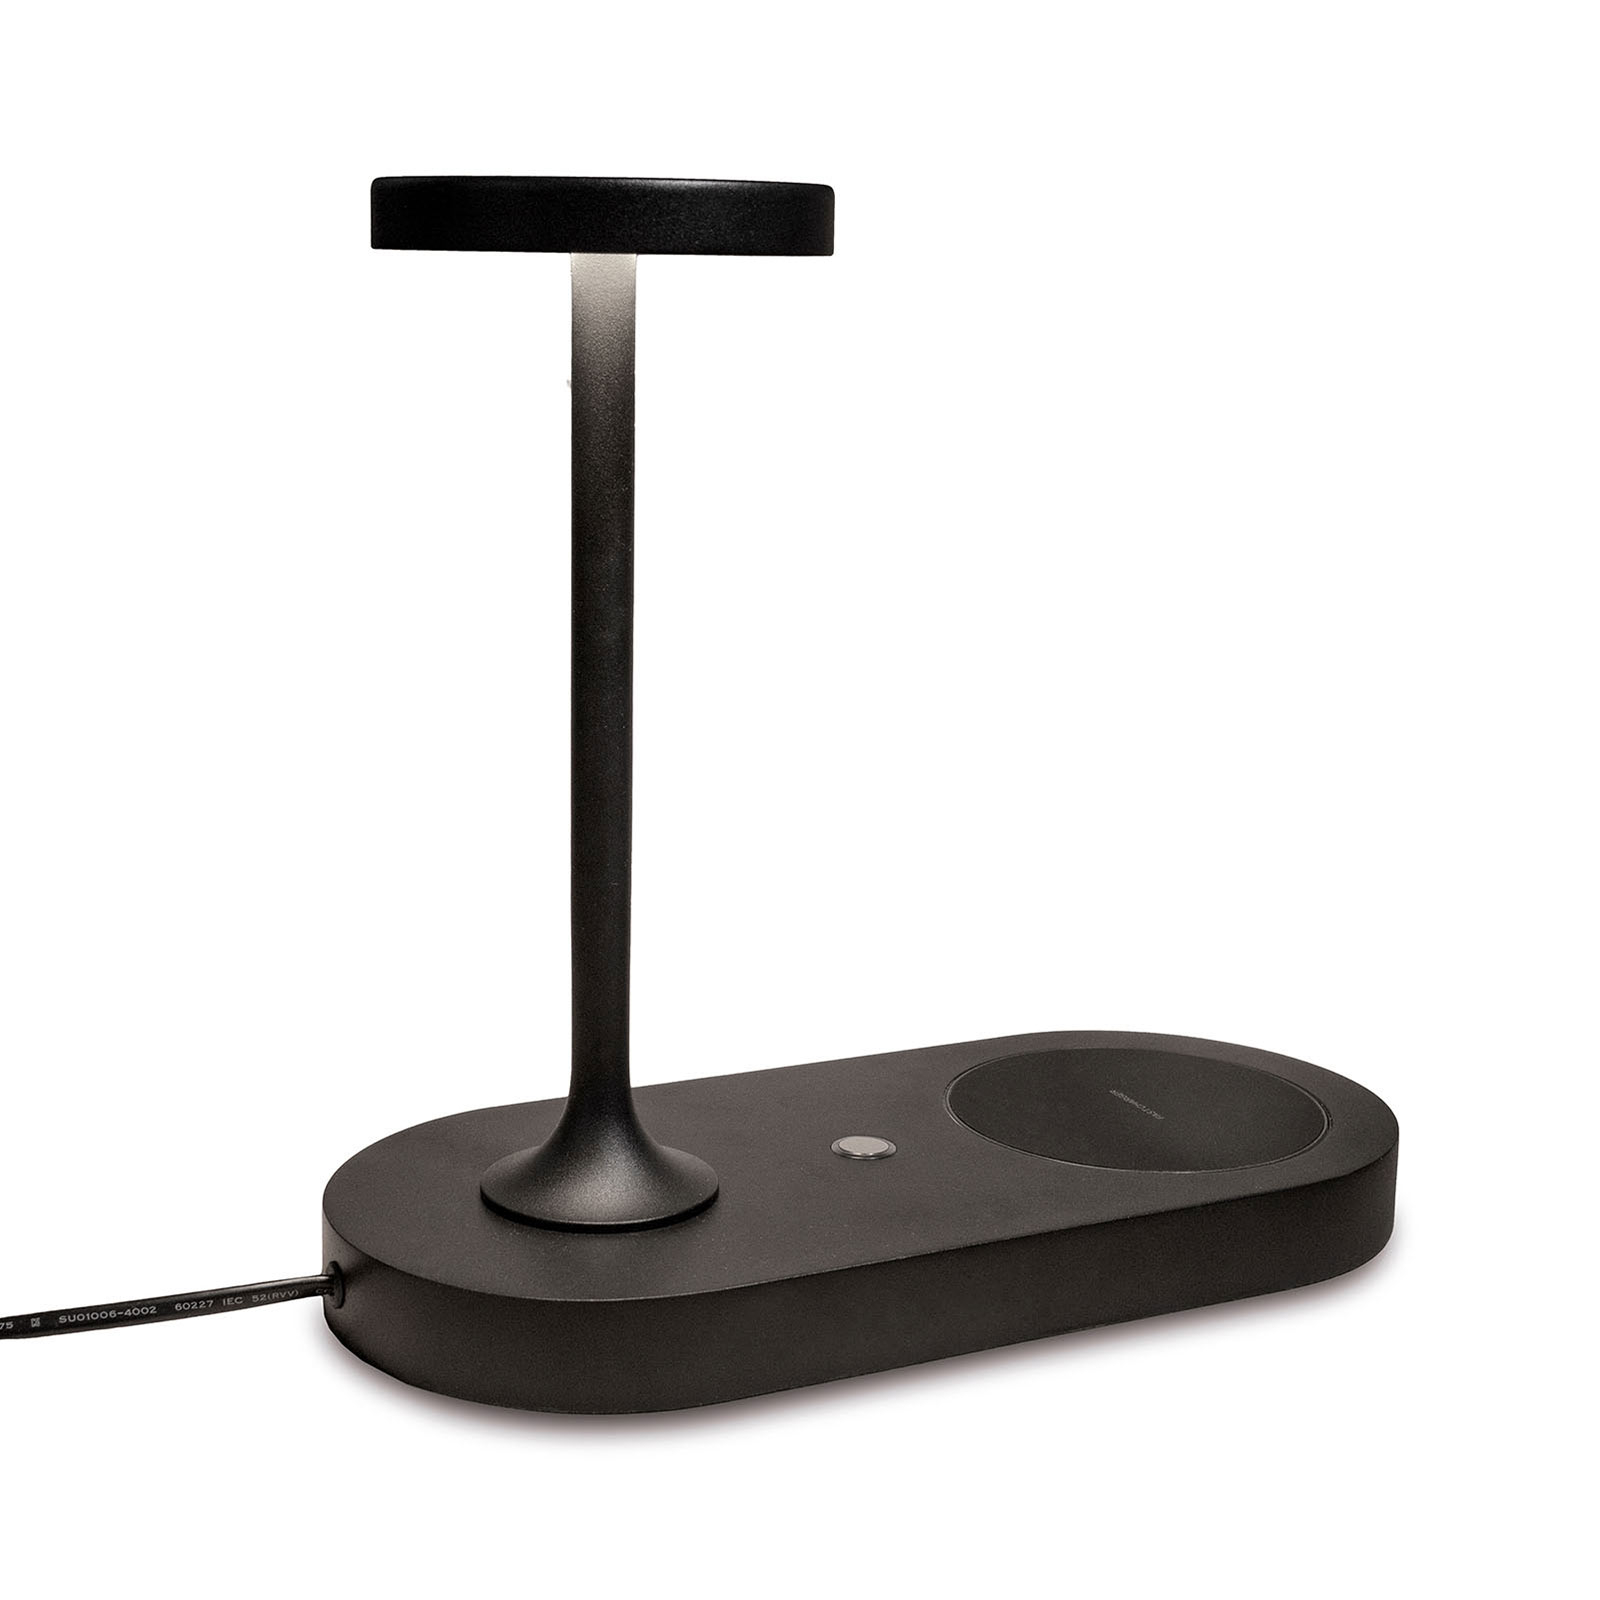 LED tafellamp Ceres met laadstation, zwart